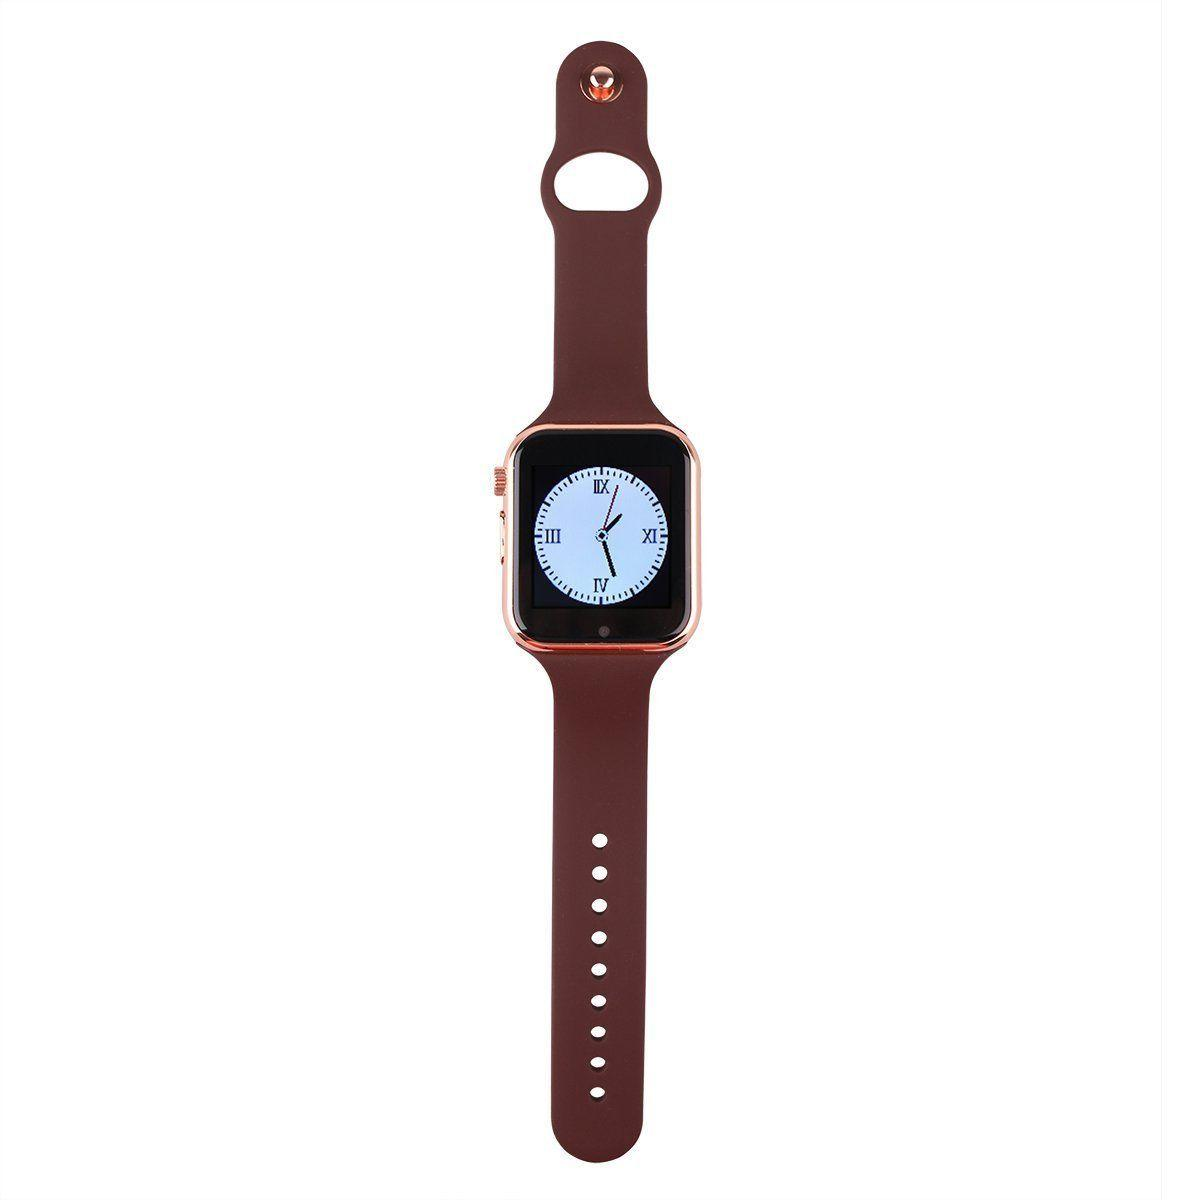 NEW BlueTooth Watch w/Camera for iPhone Samsung LG HTC Huawei GIFT